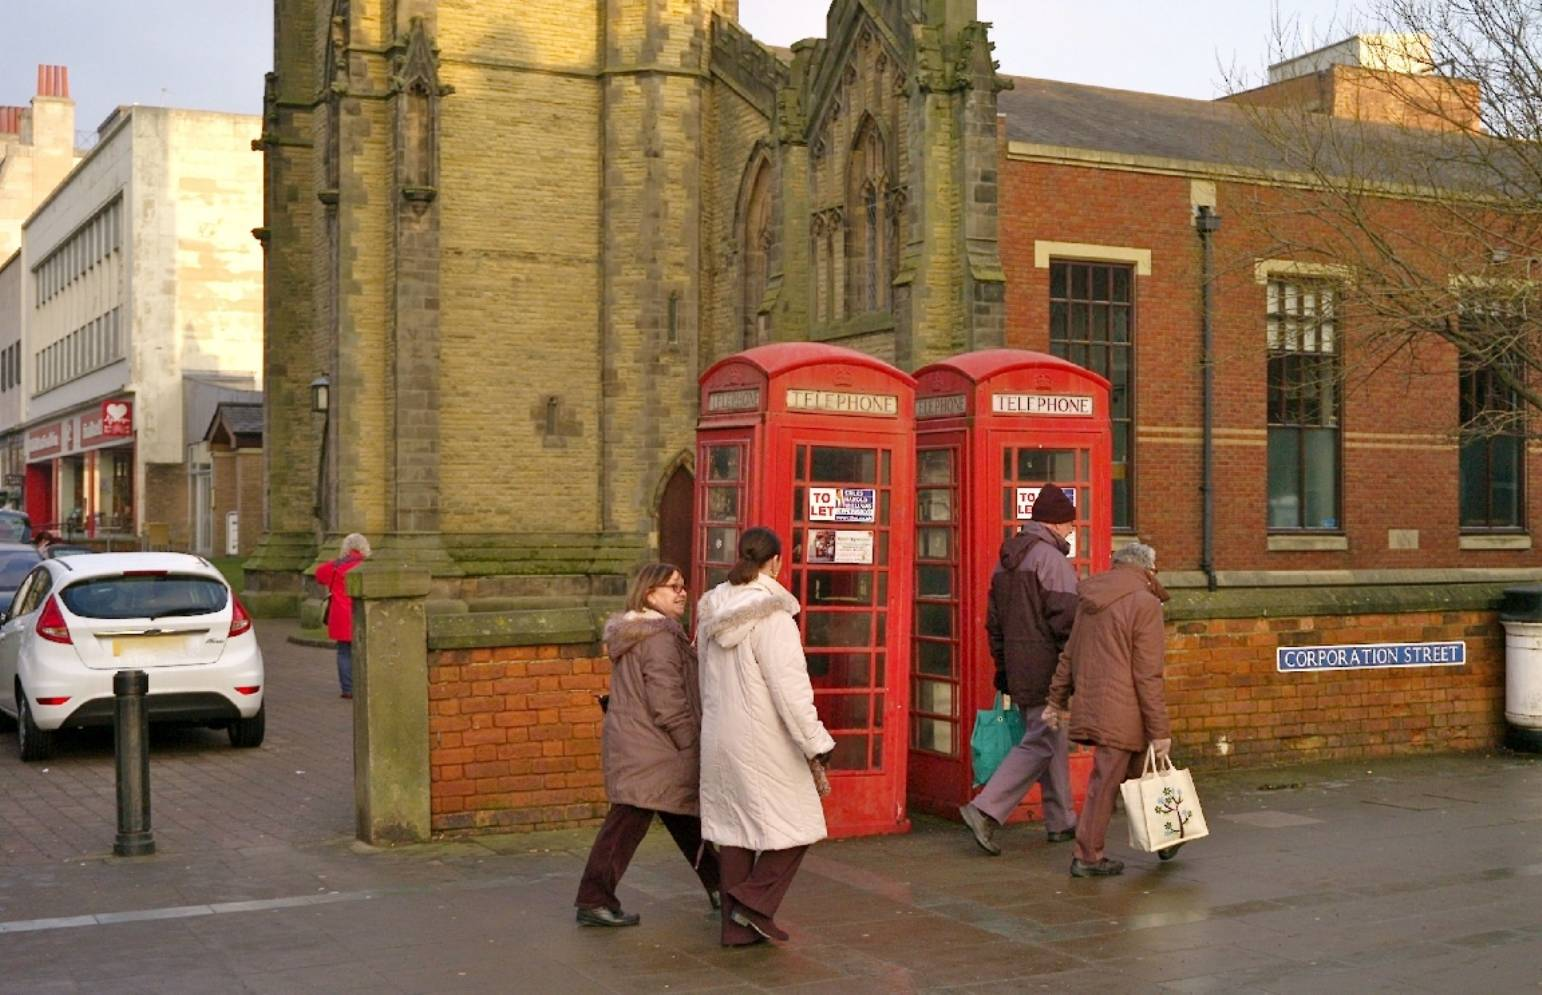 RINGING THE CHANGES FOR PHONE BOXES